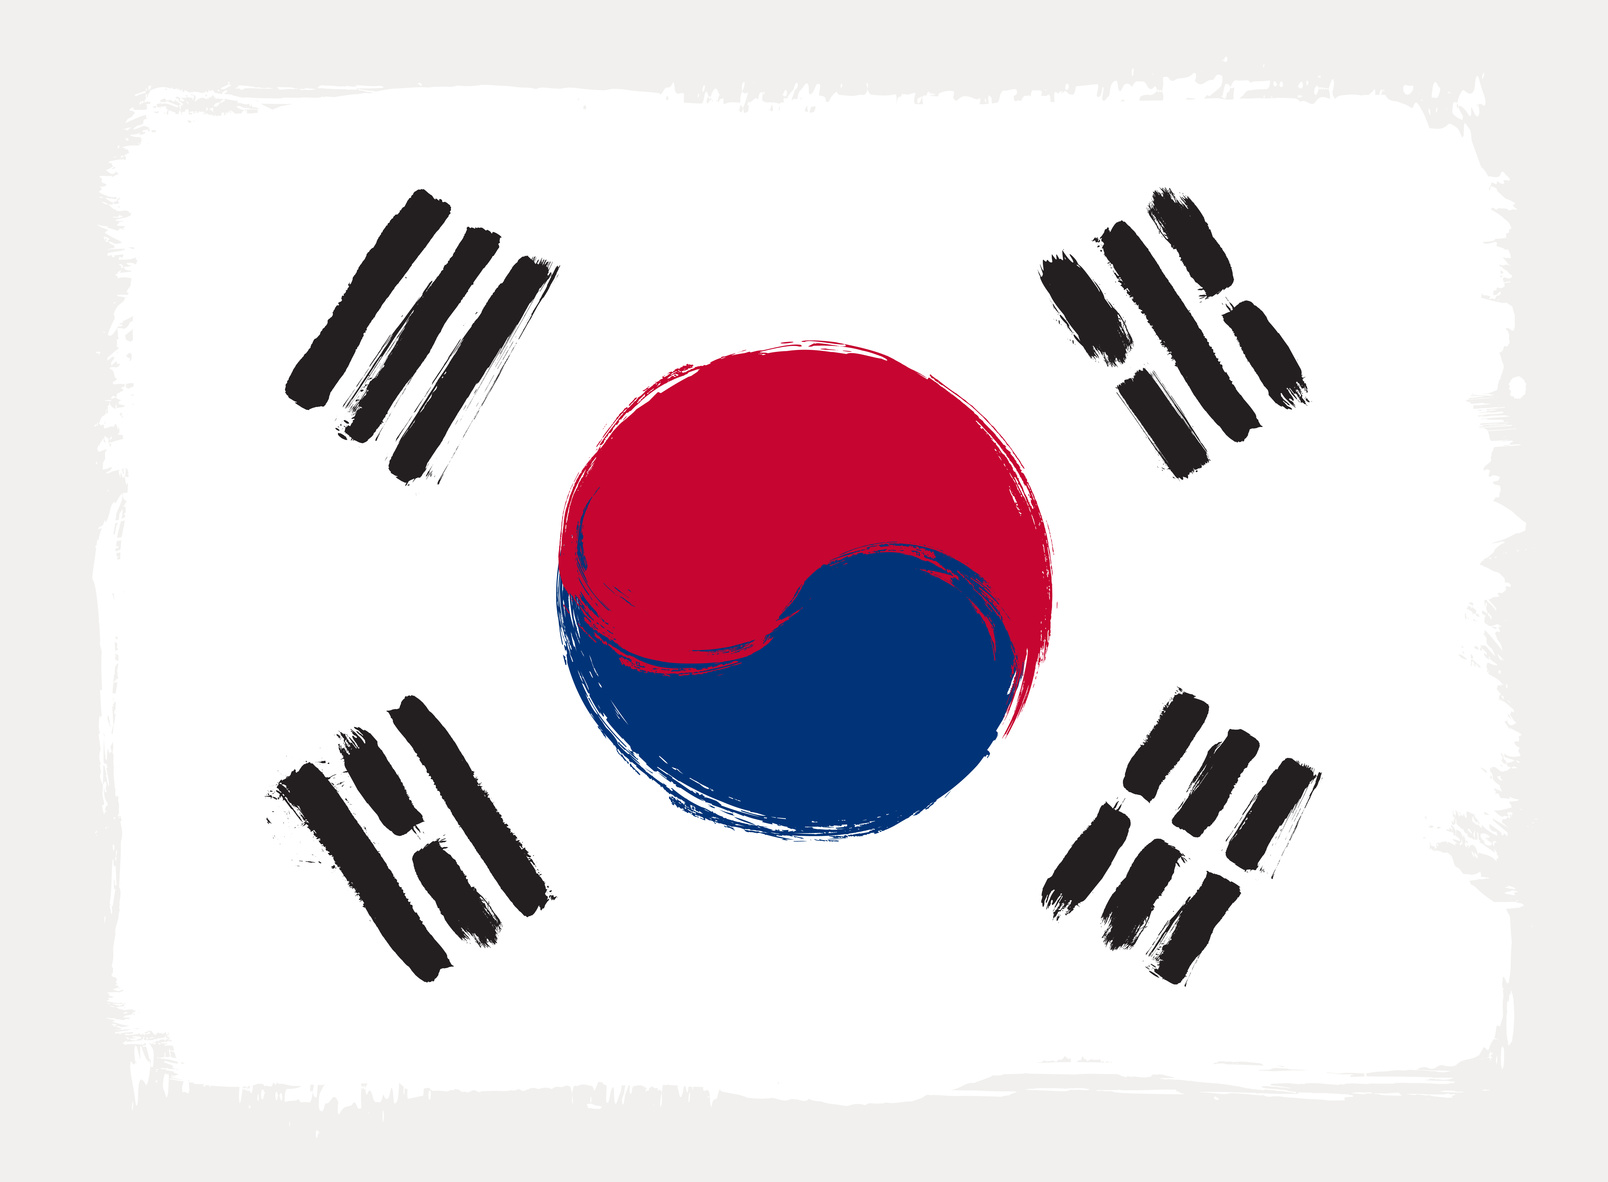 """Fintech is a chief industry that will lead Korea's future"""